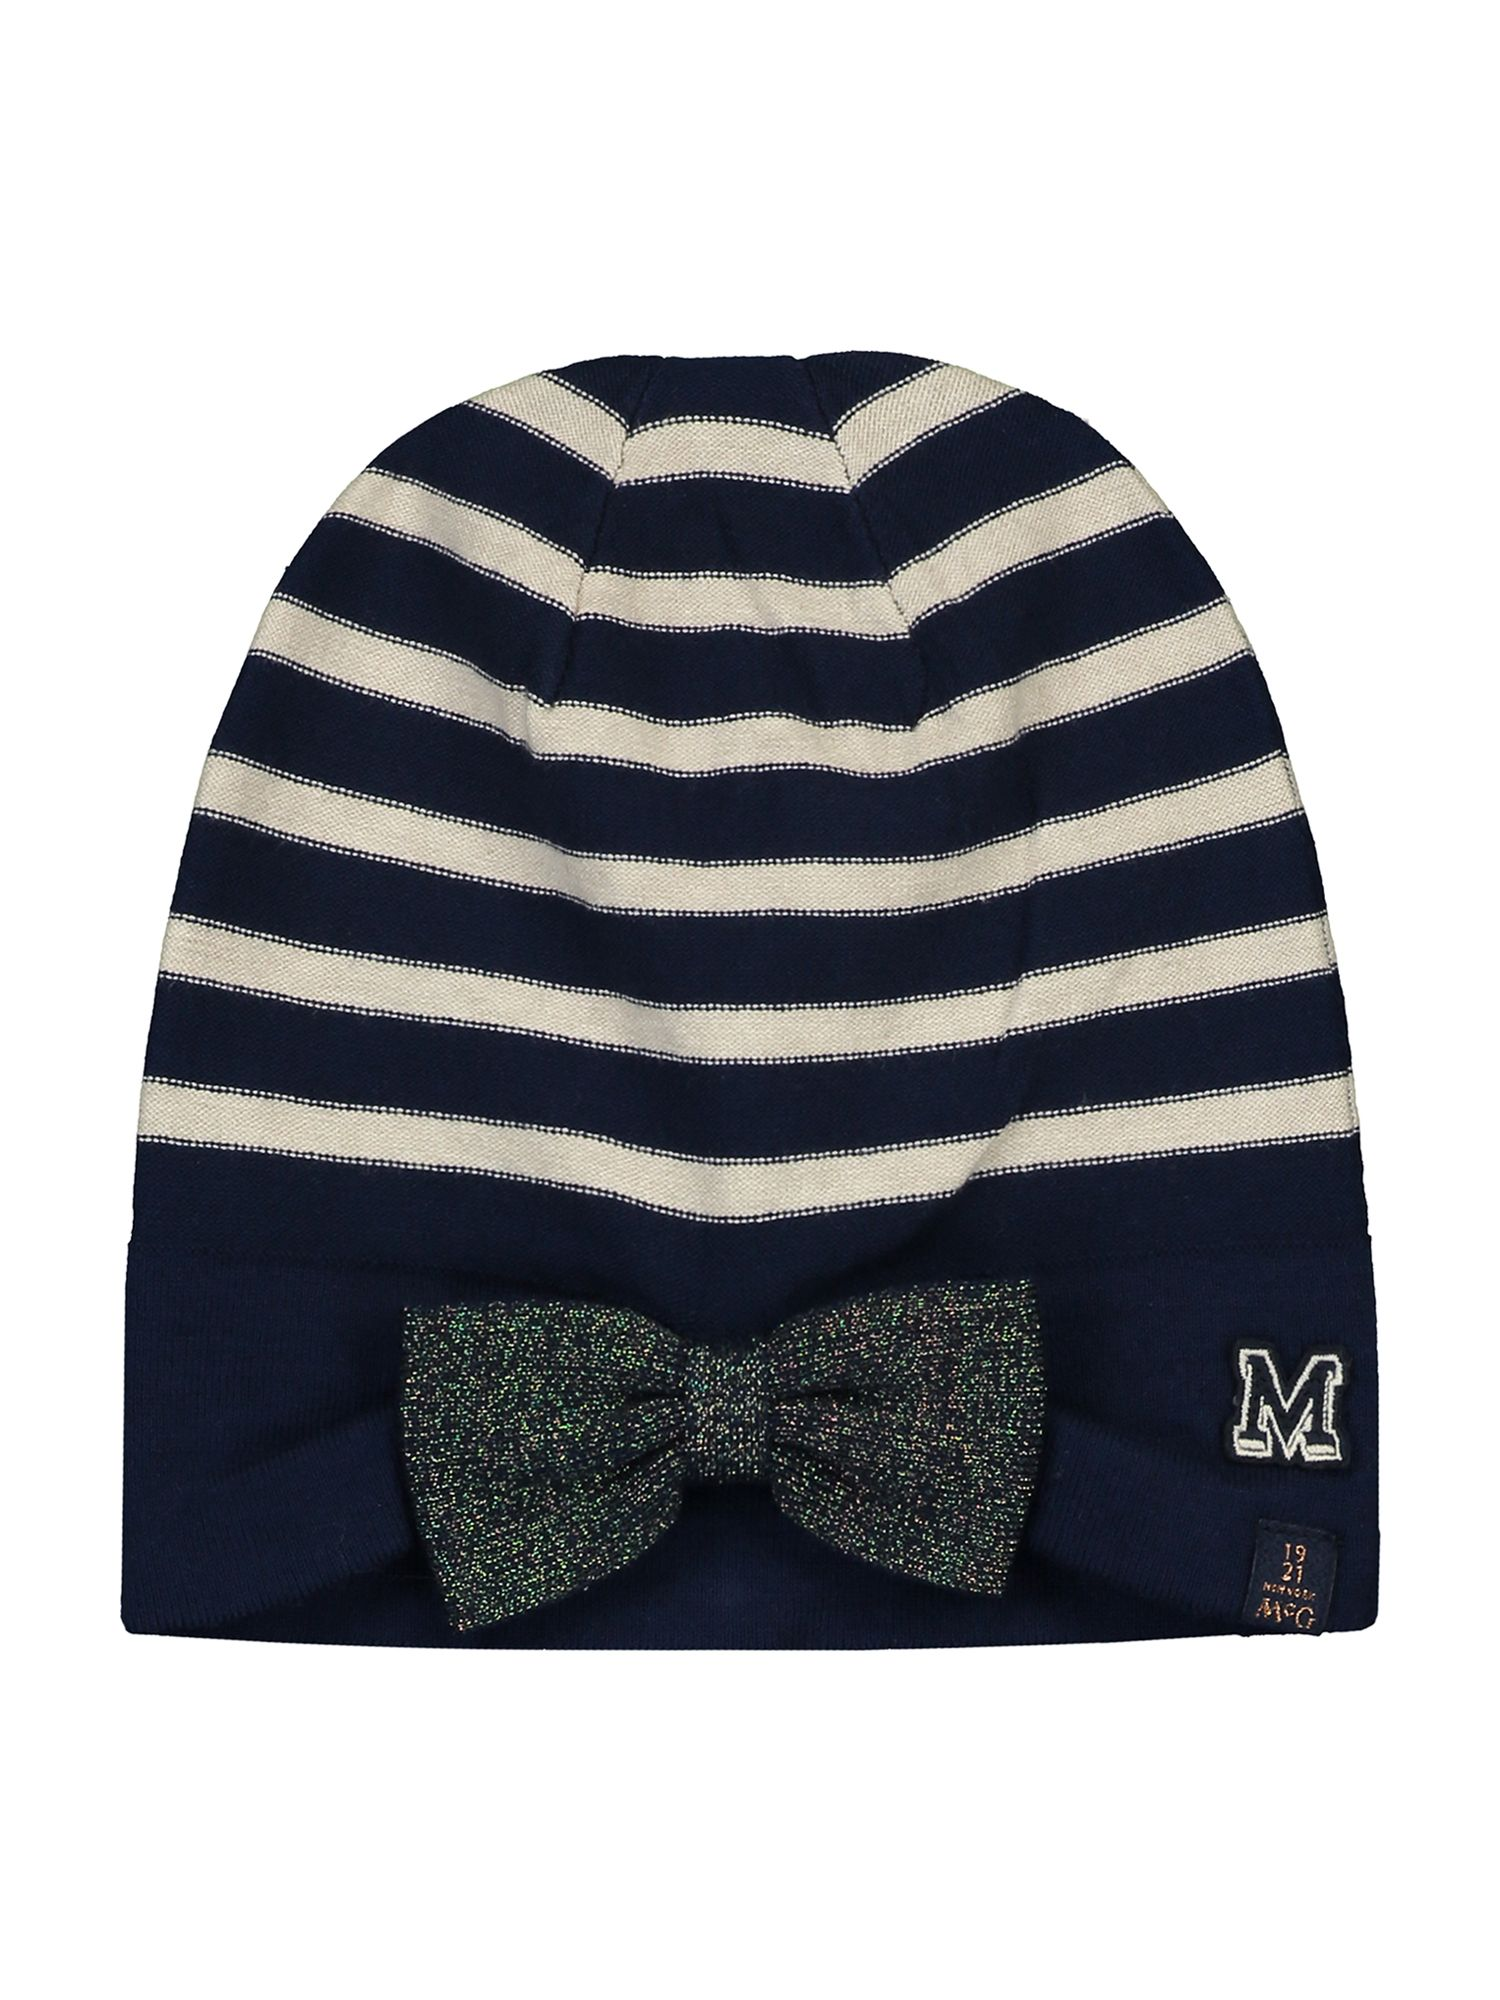 McGregor McGregor Girls Fenna Hat, Navy